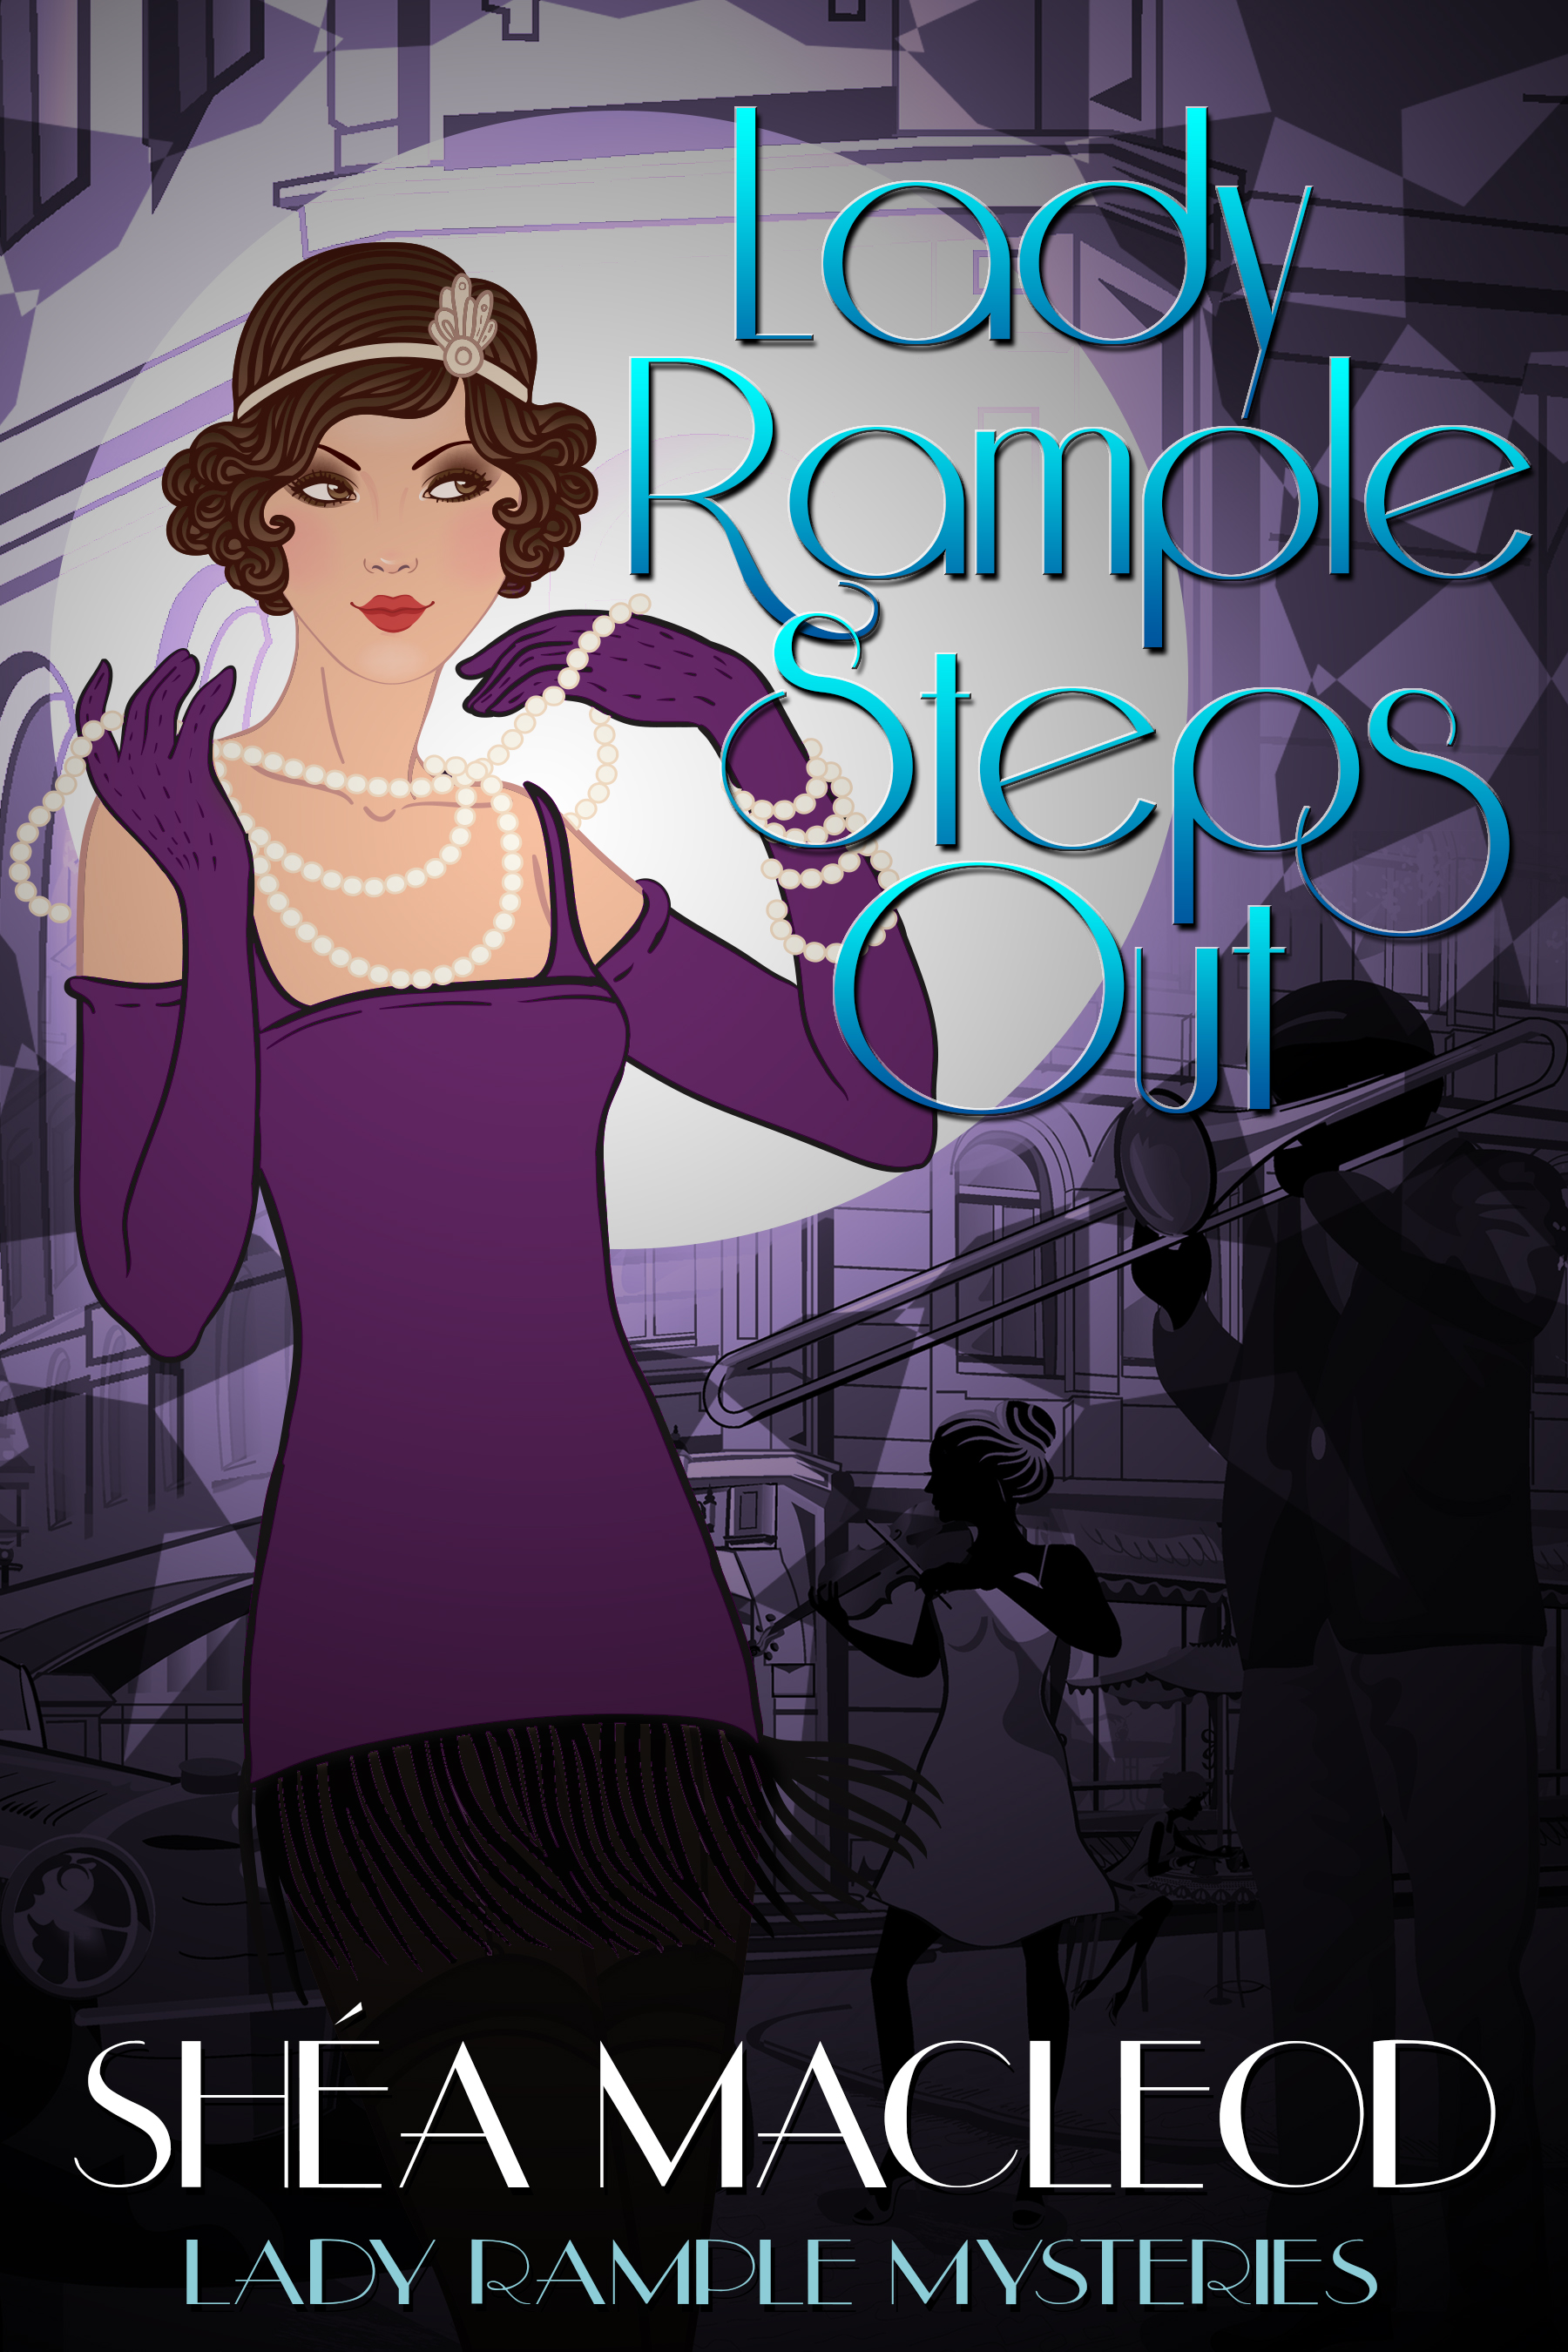 Lady Rample Steps Out